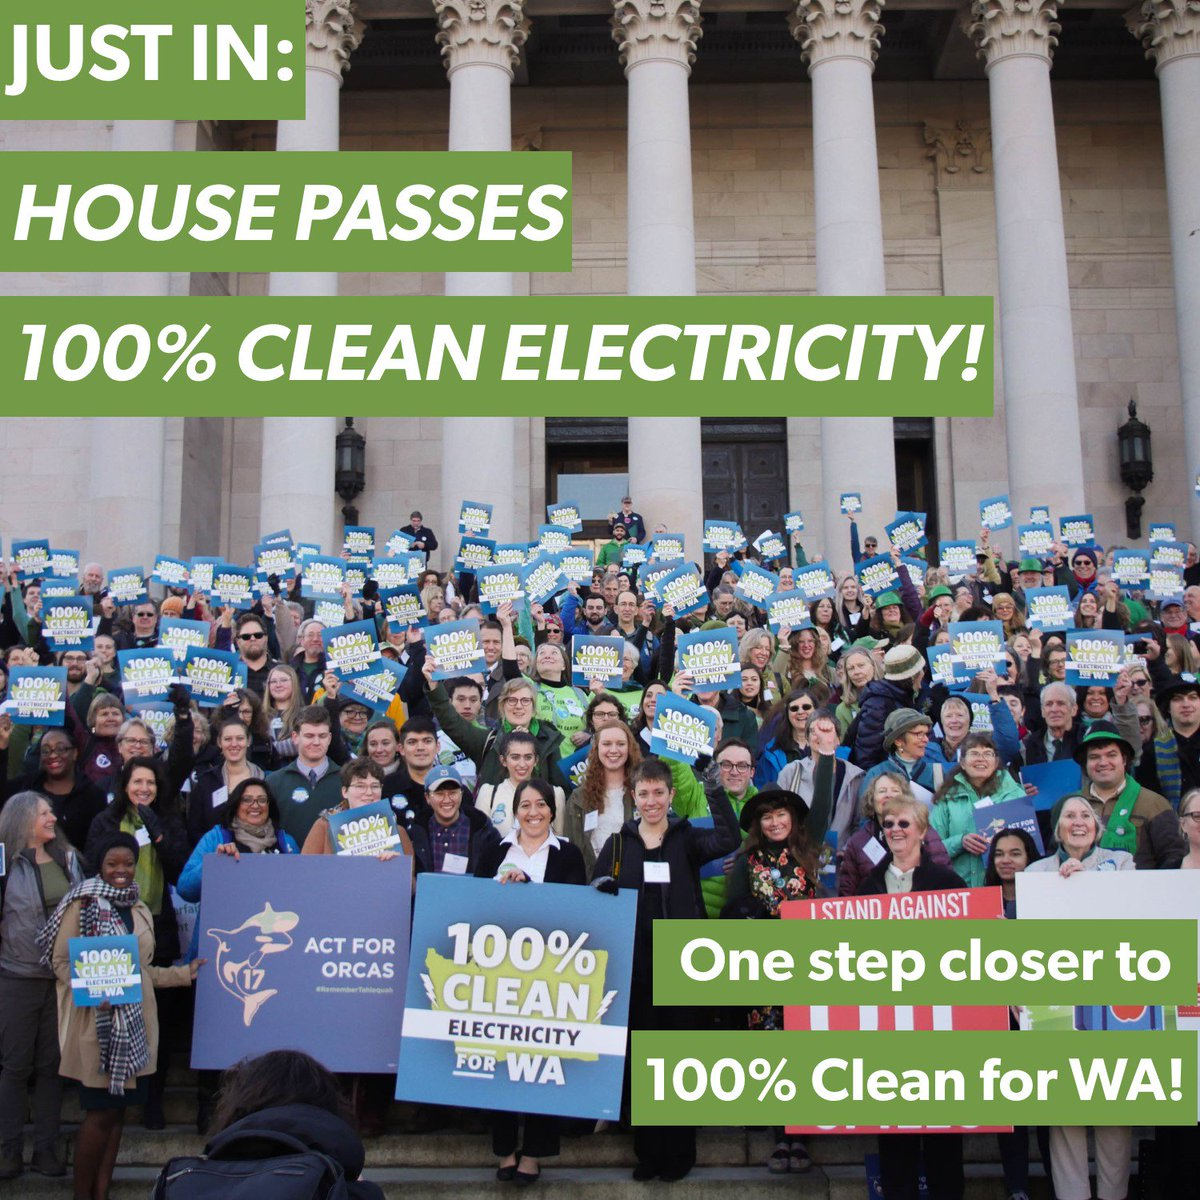 BREAKING: #100PercentClean just passed the #WALeg House! Together we are making strides toward reducing climate pollution and building a foundation for frontline communities to be a part of the transition to clean electricity — one that all households can afford!